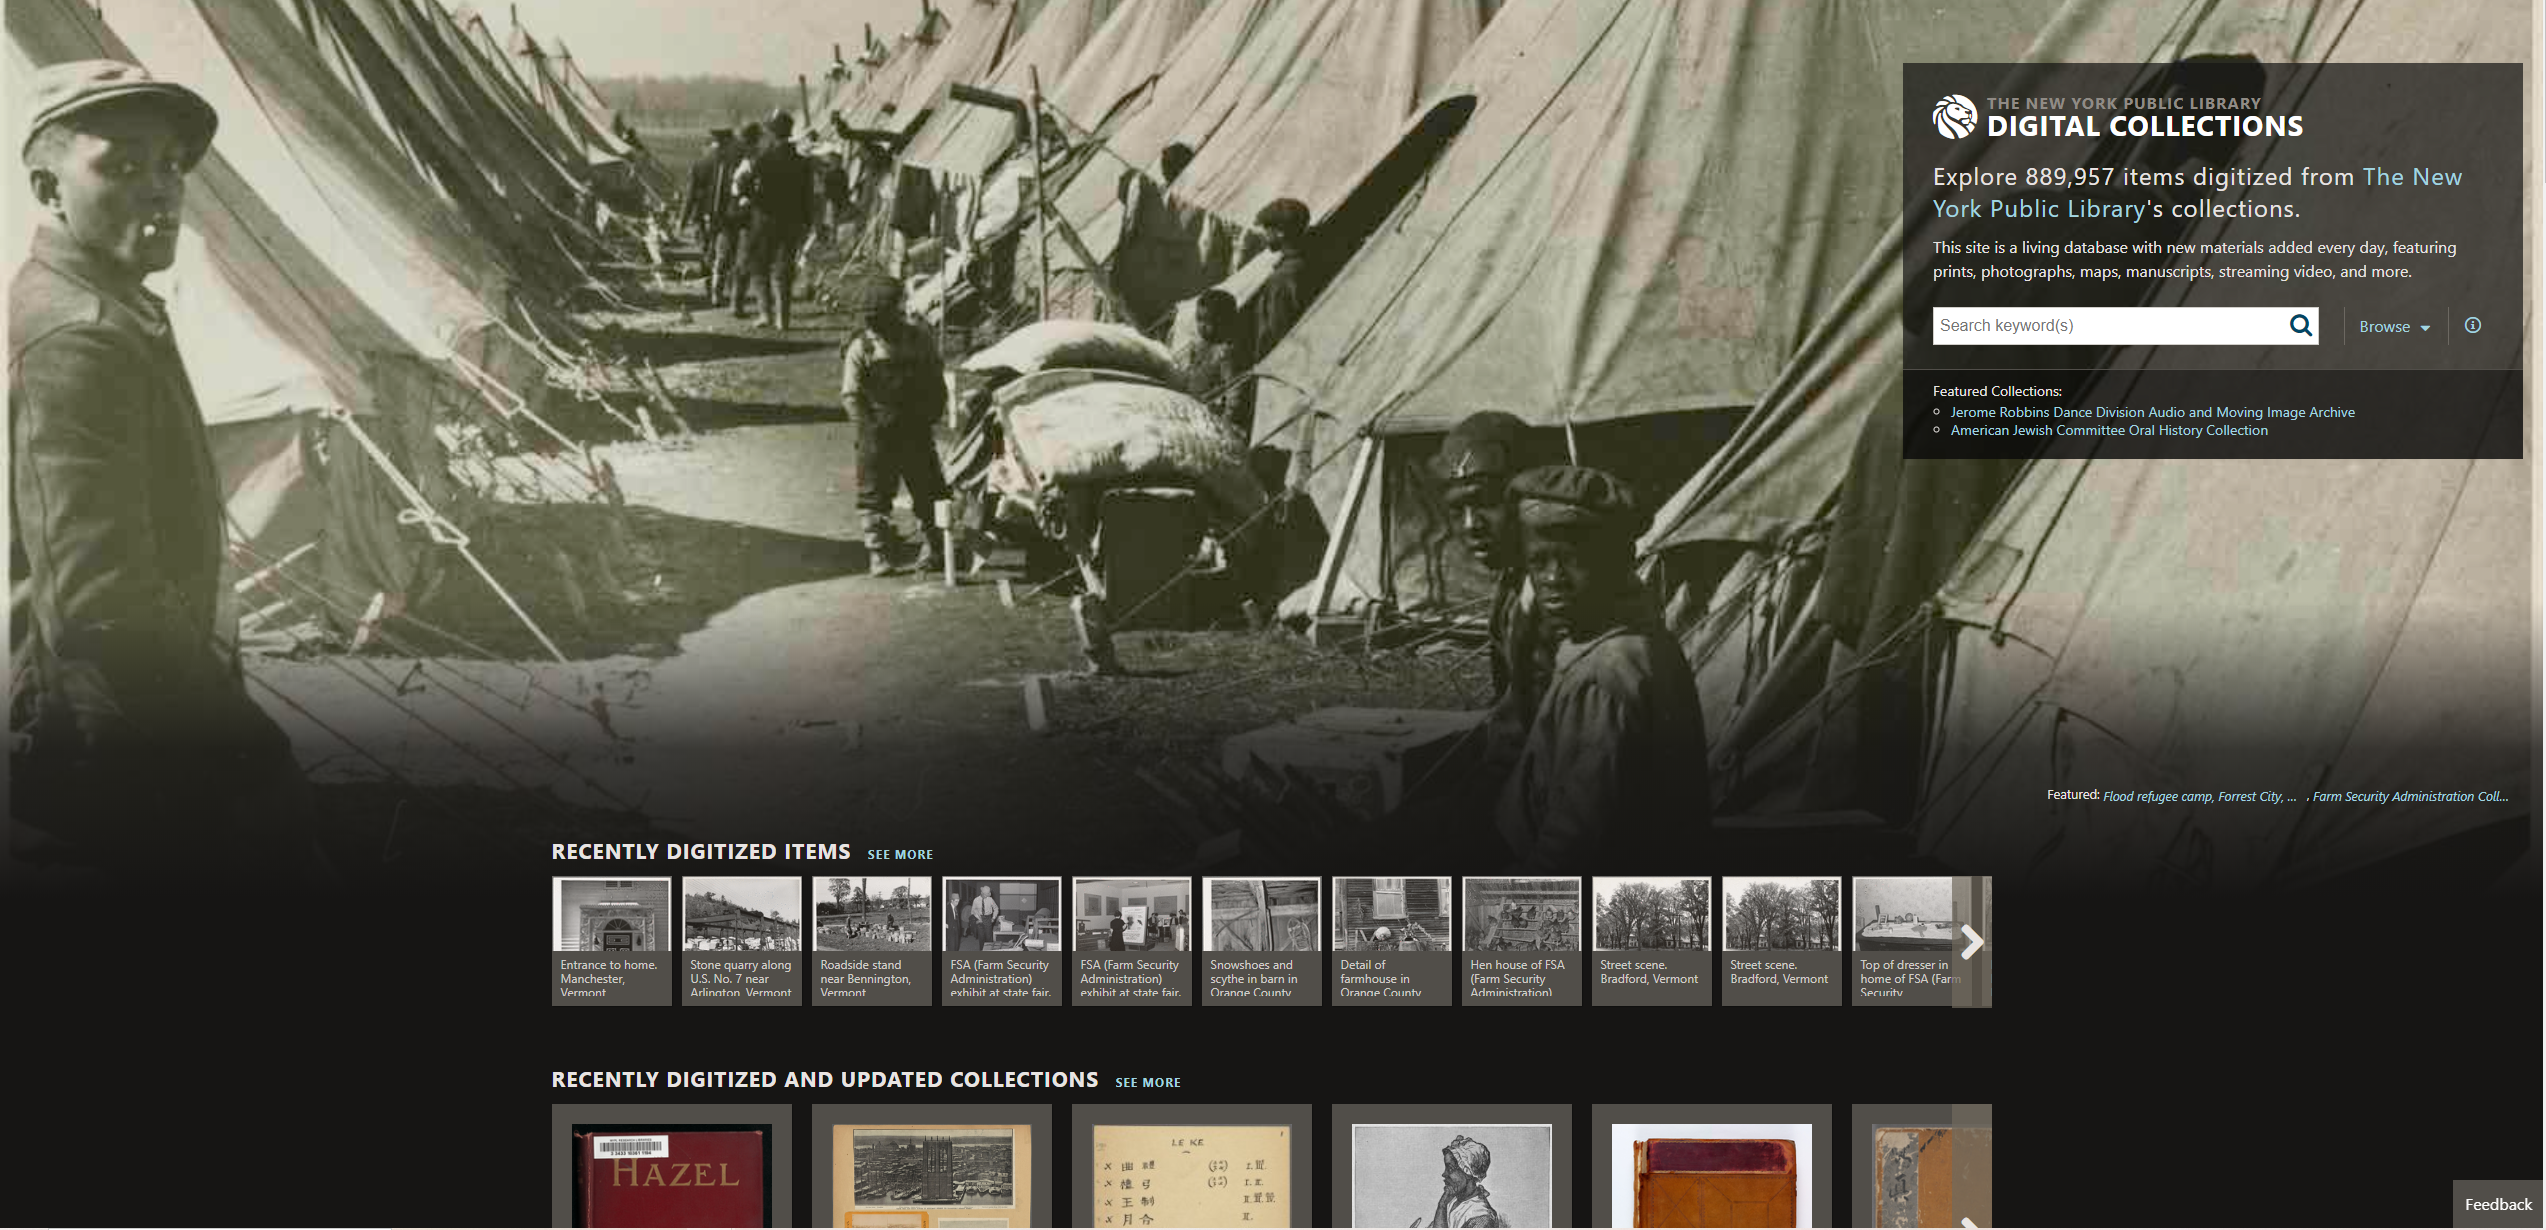 Screenshot of the New York Public Library's Digital Collections Portal Home Page.